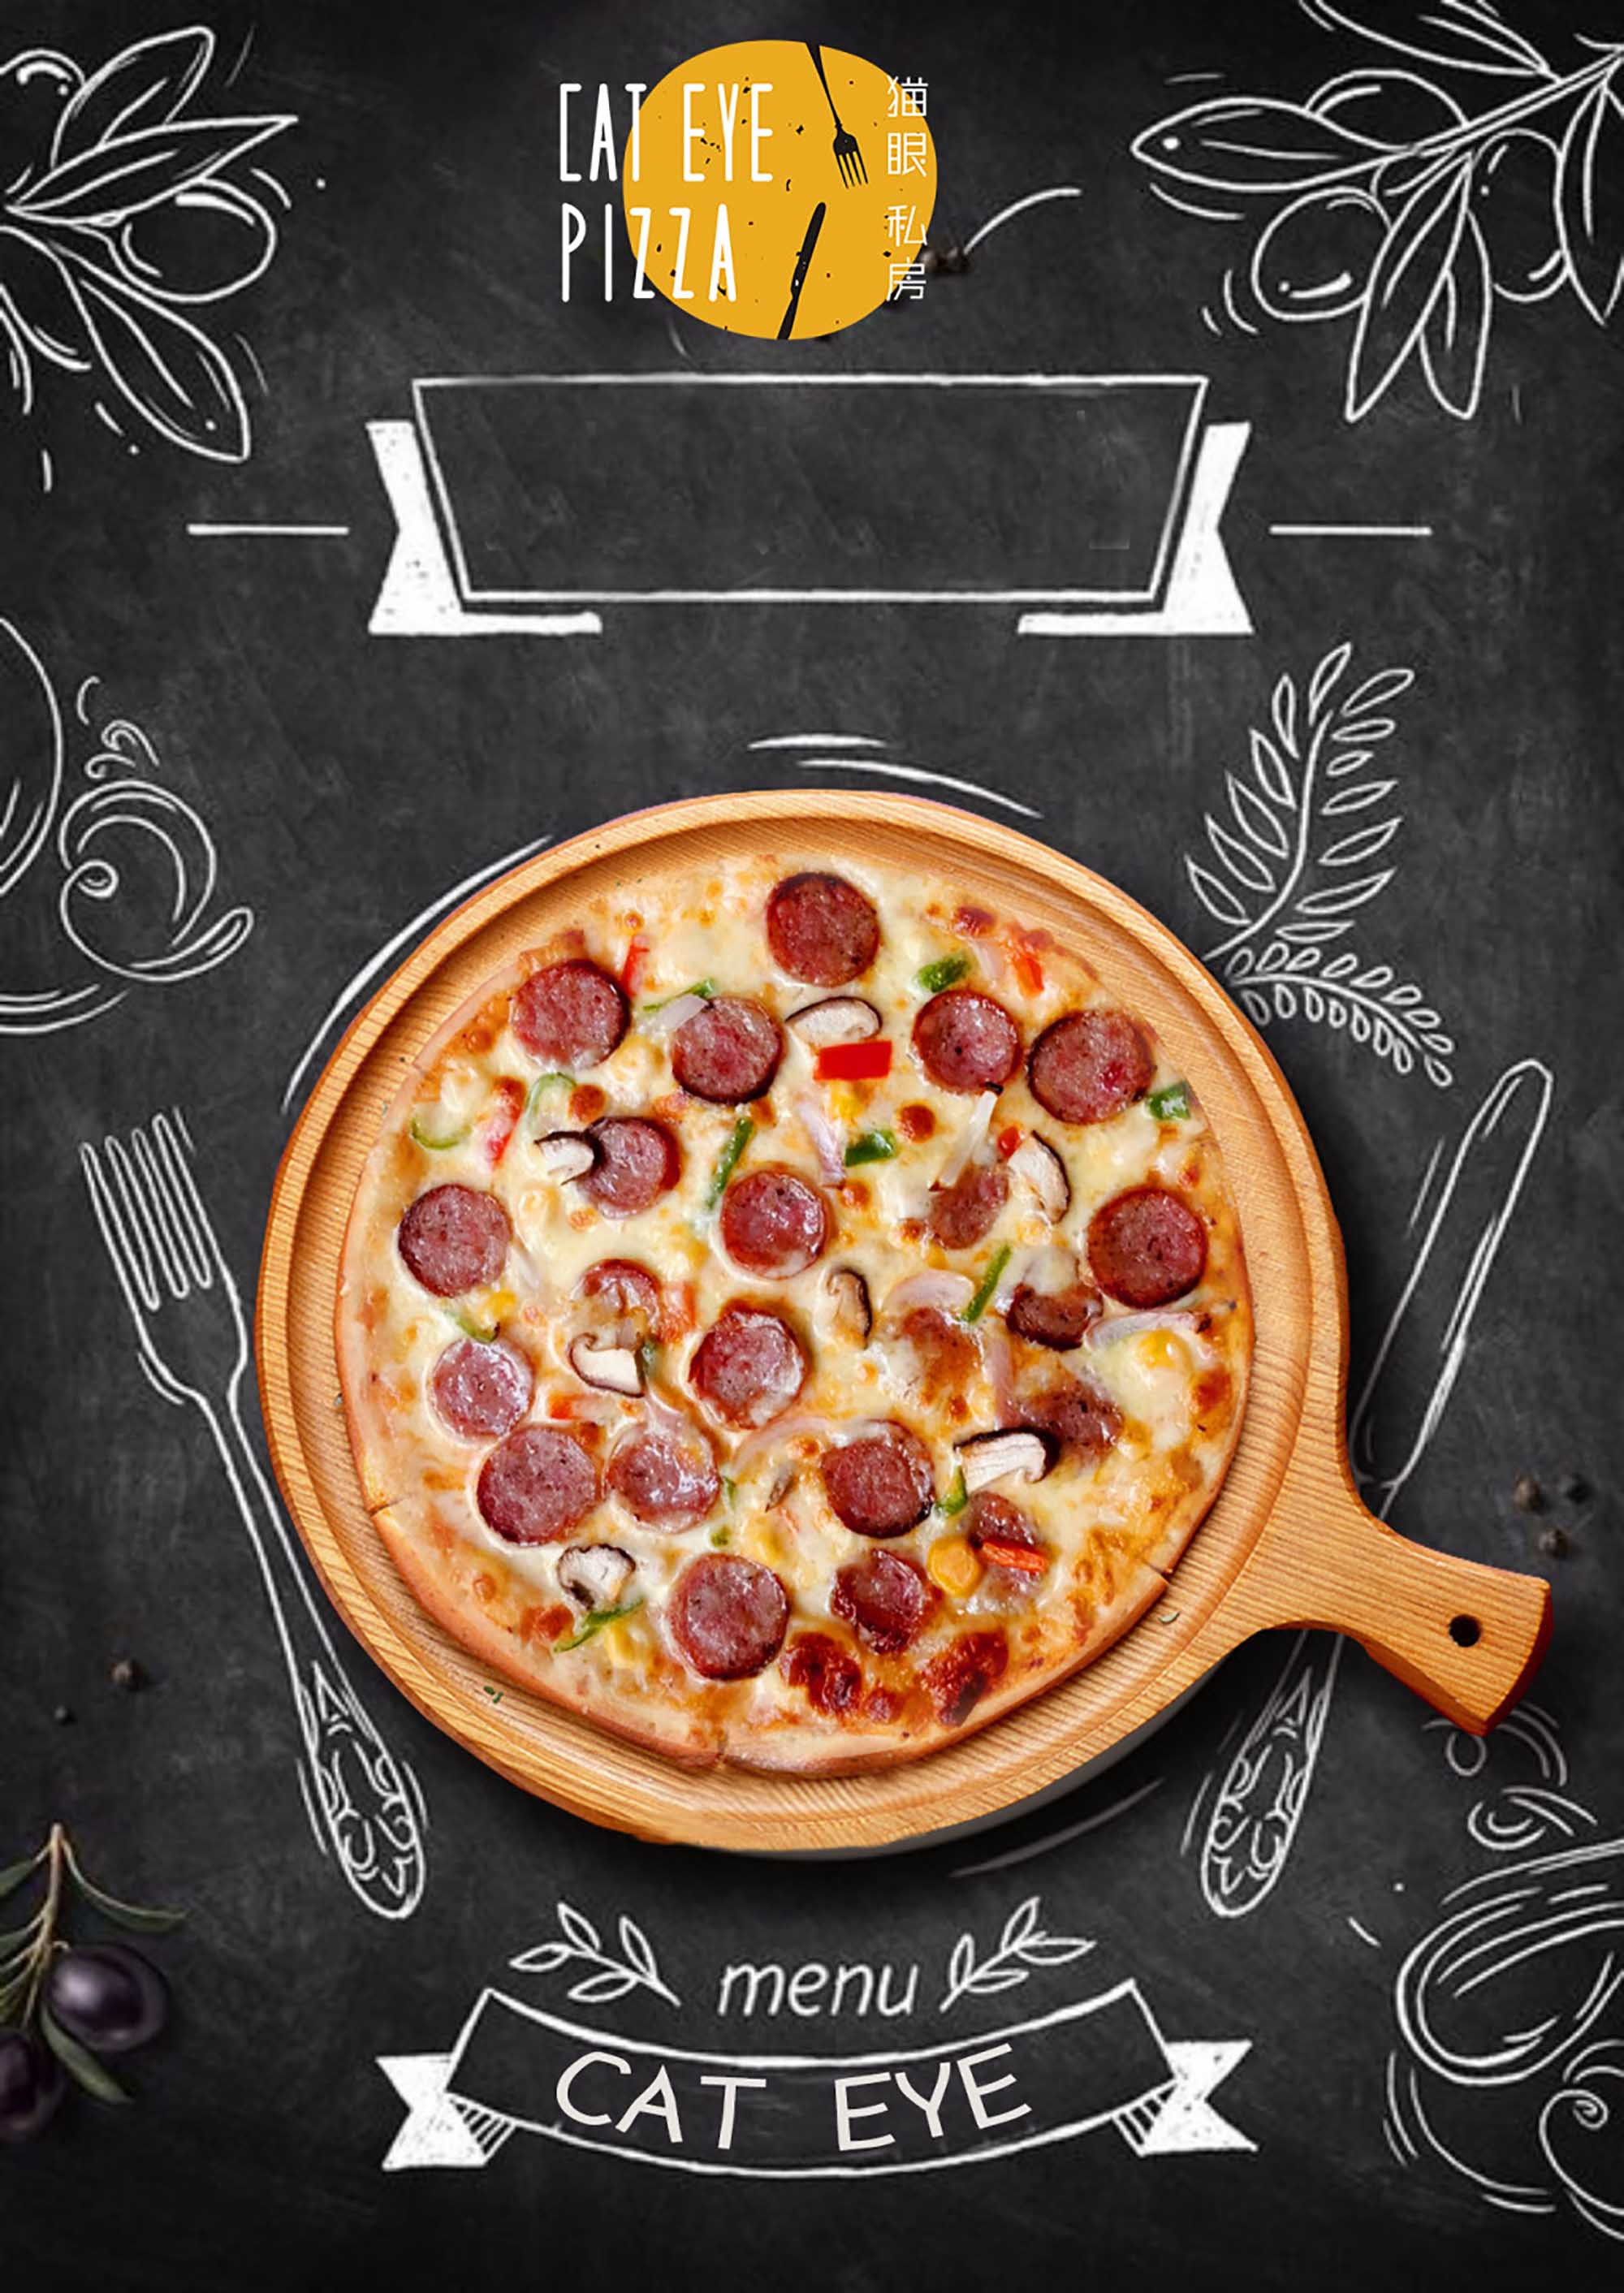 Black Crown Wallpaper Pizza Background Material Poster Lunch Dish Background